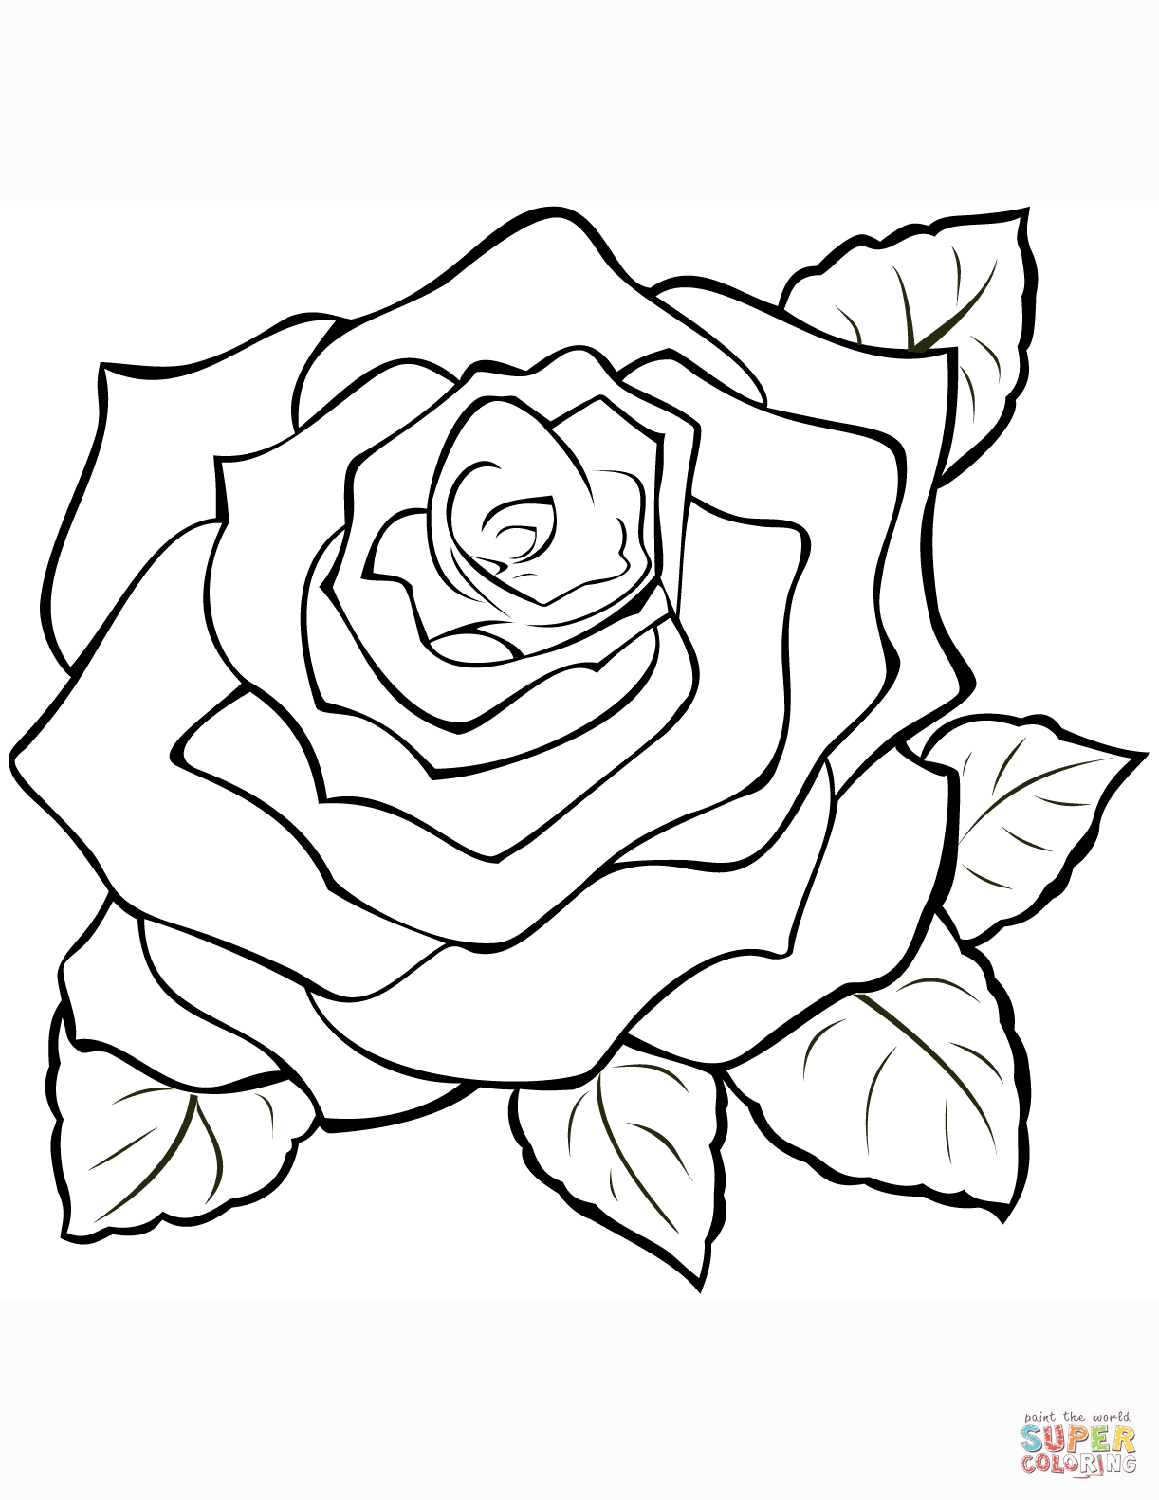 a coloring page of a rose rose coloring page free printable coloring pages coloring of rose page a a